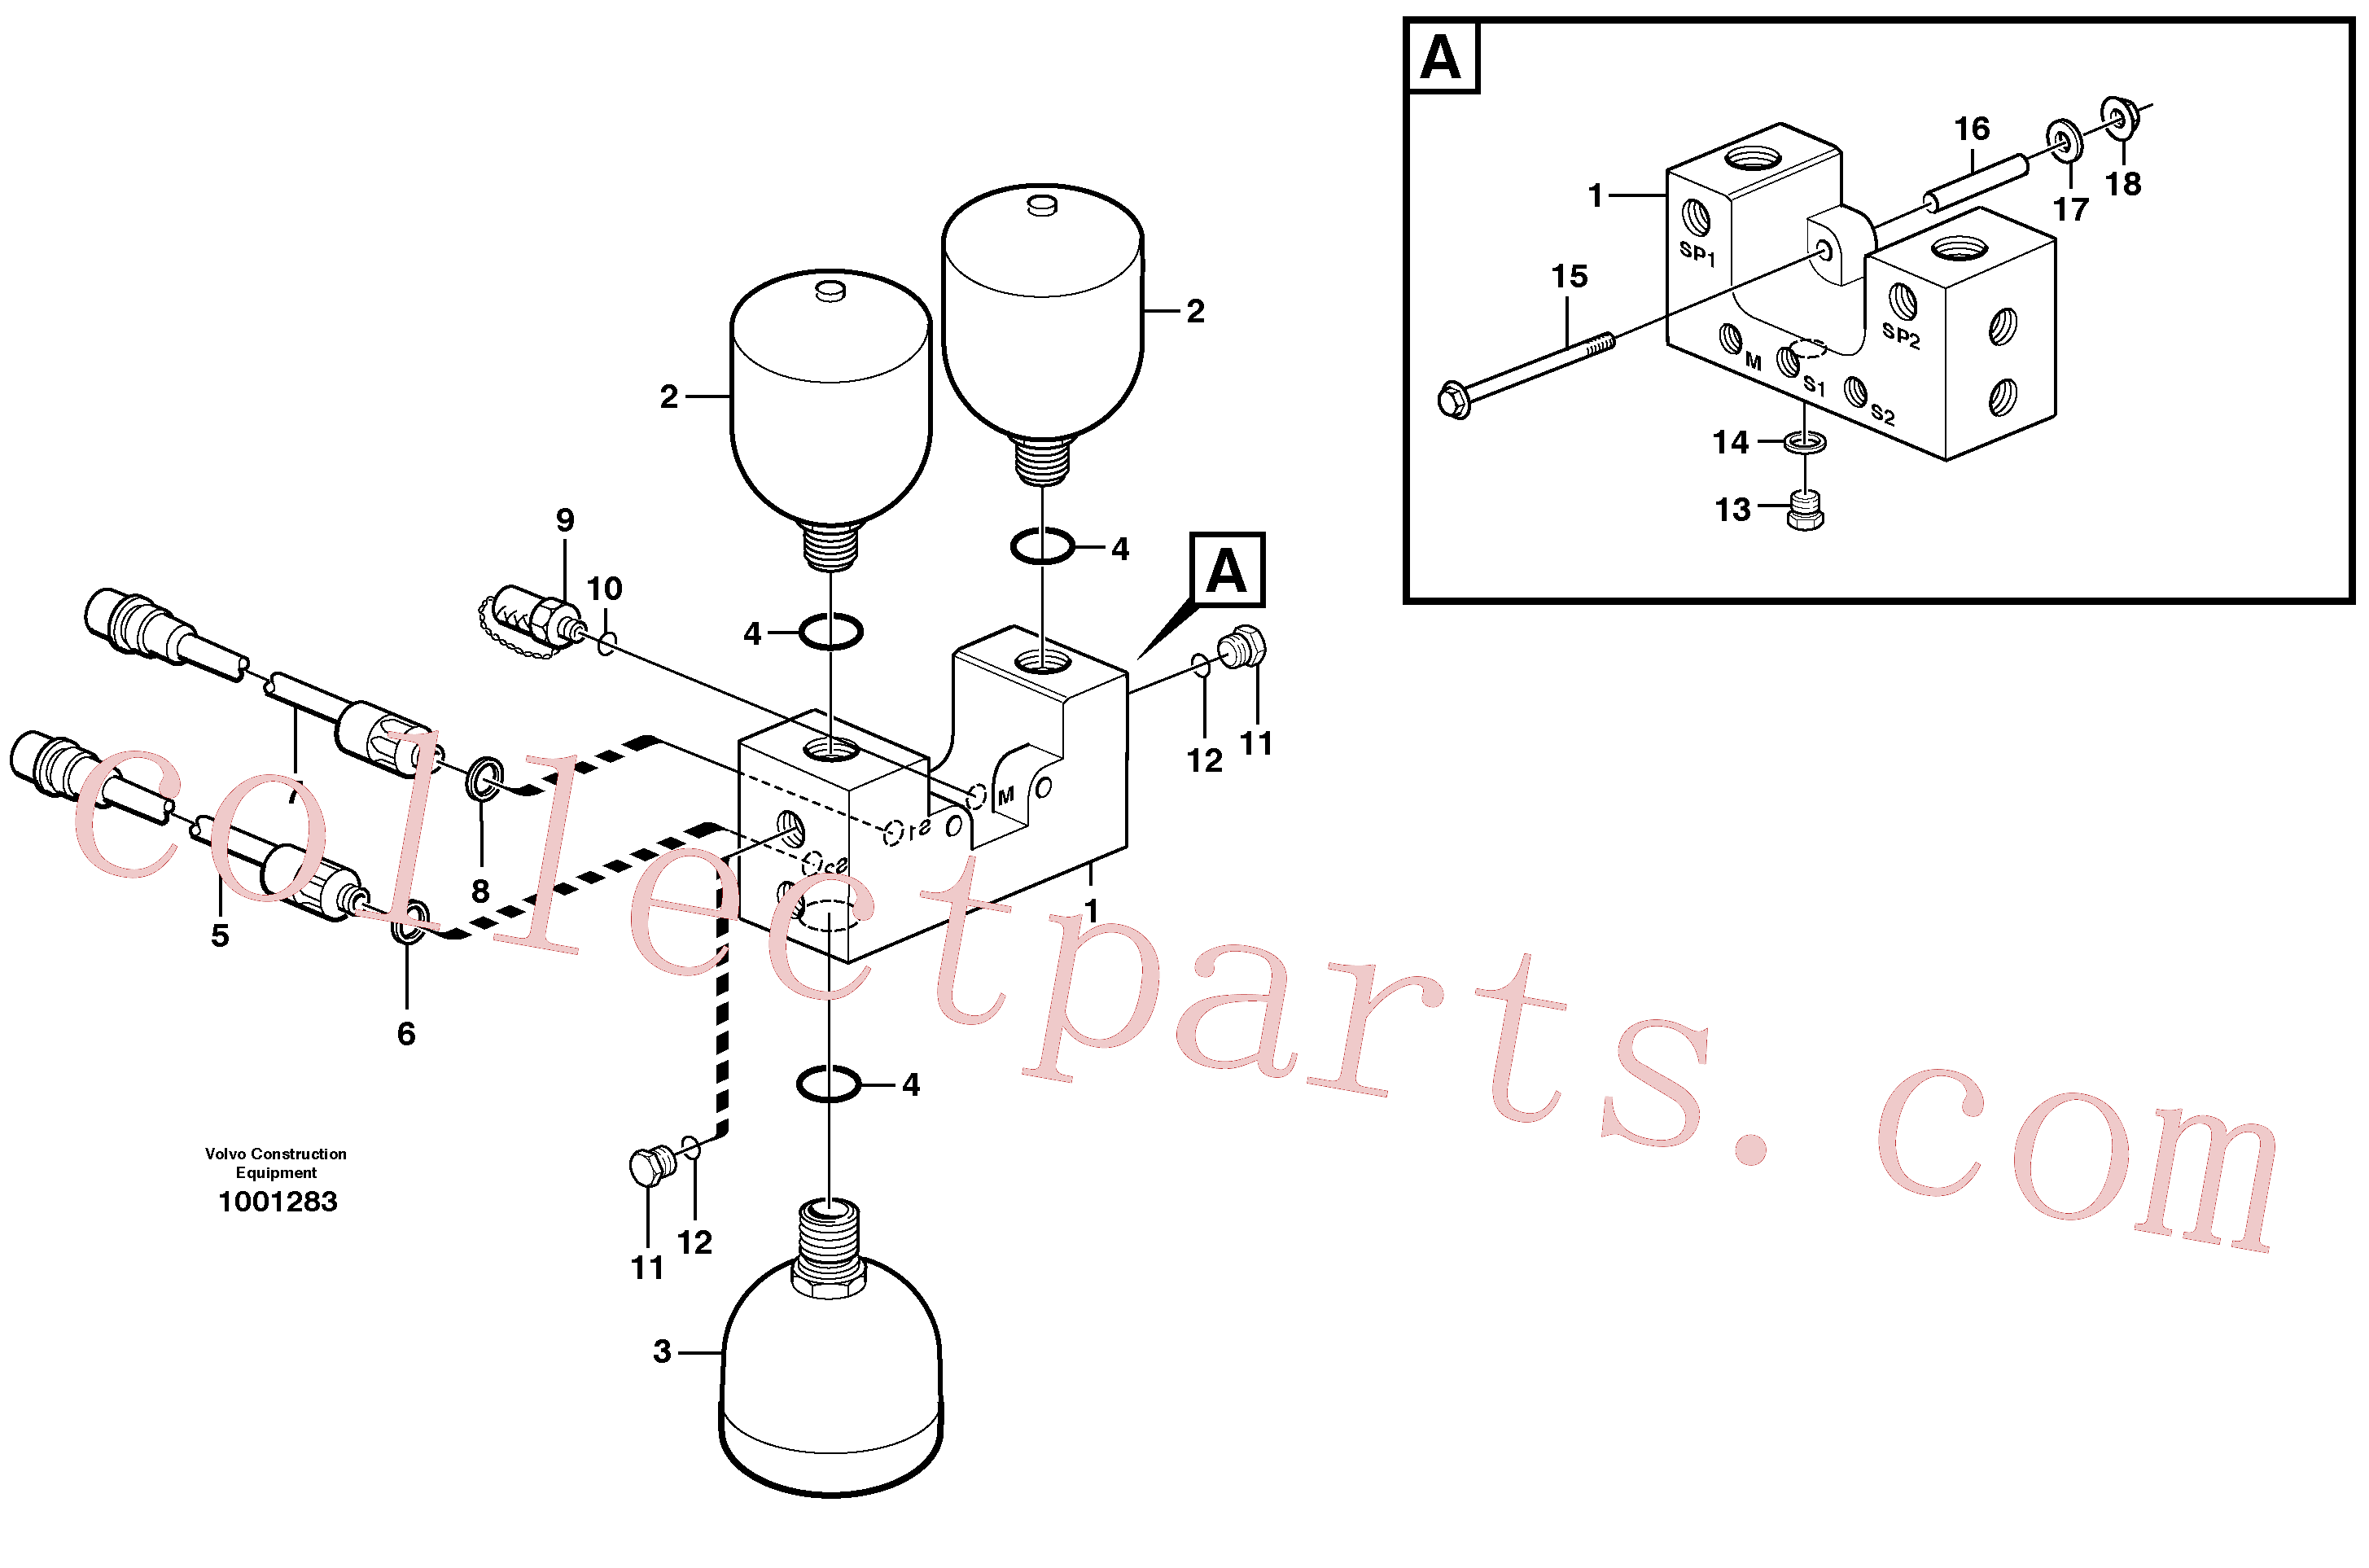 VOE968612 for Volvo Valve and accumulators(1001283 assembly)